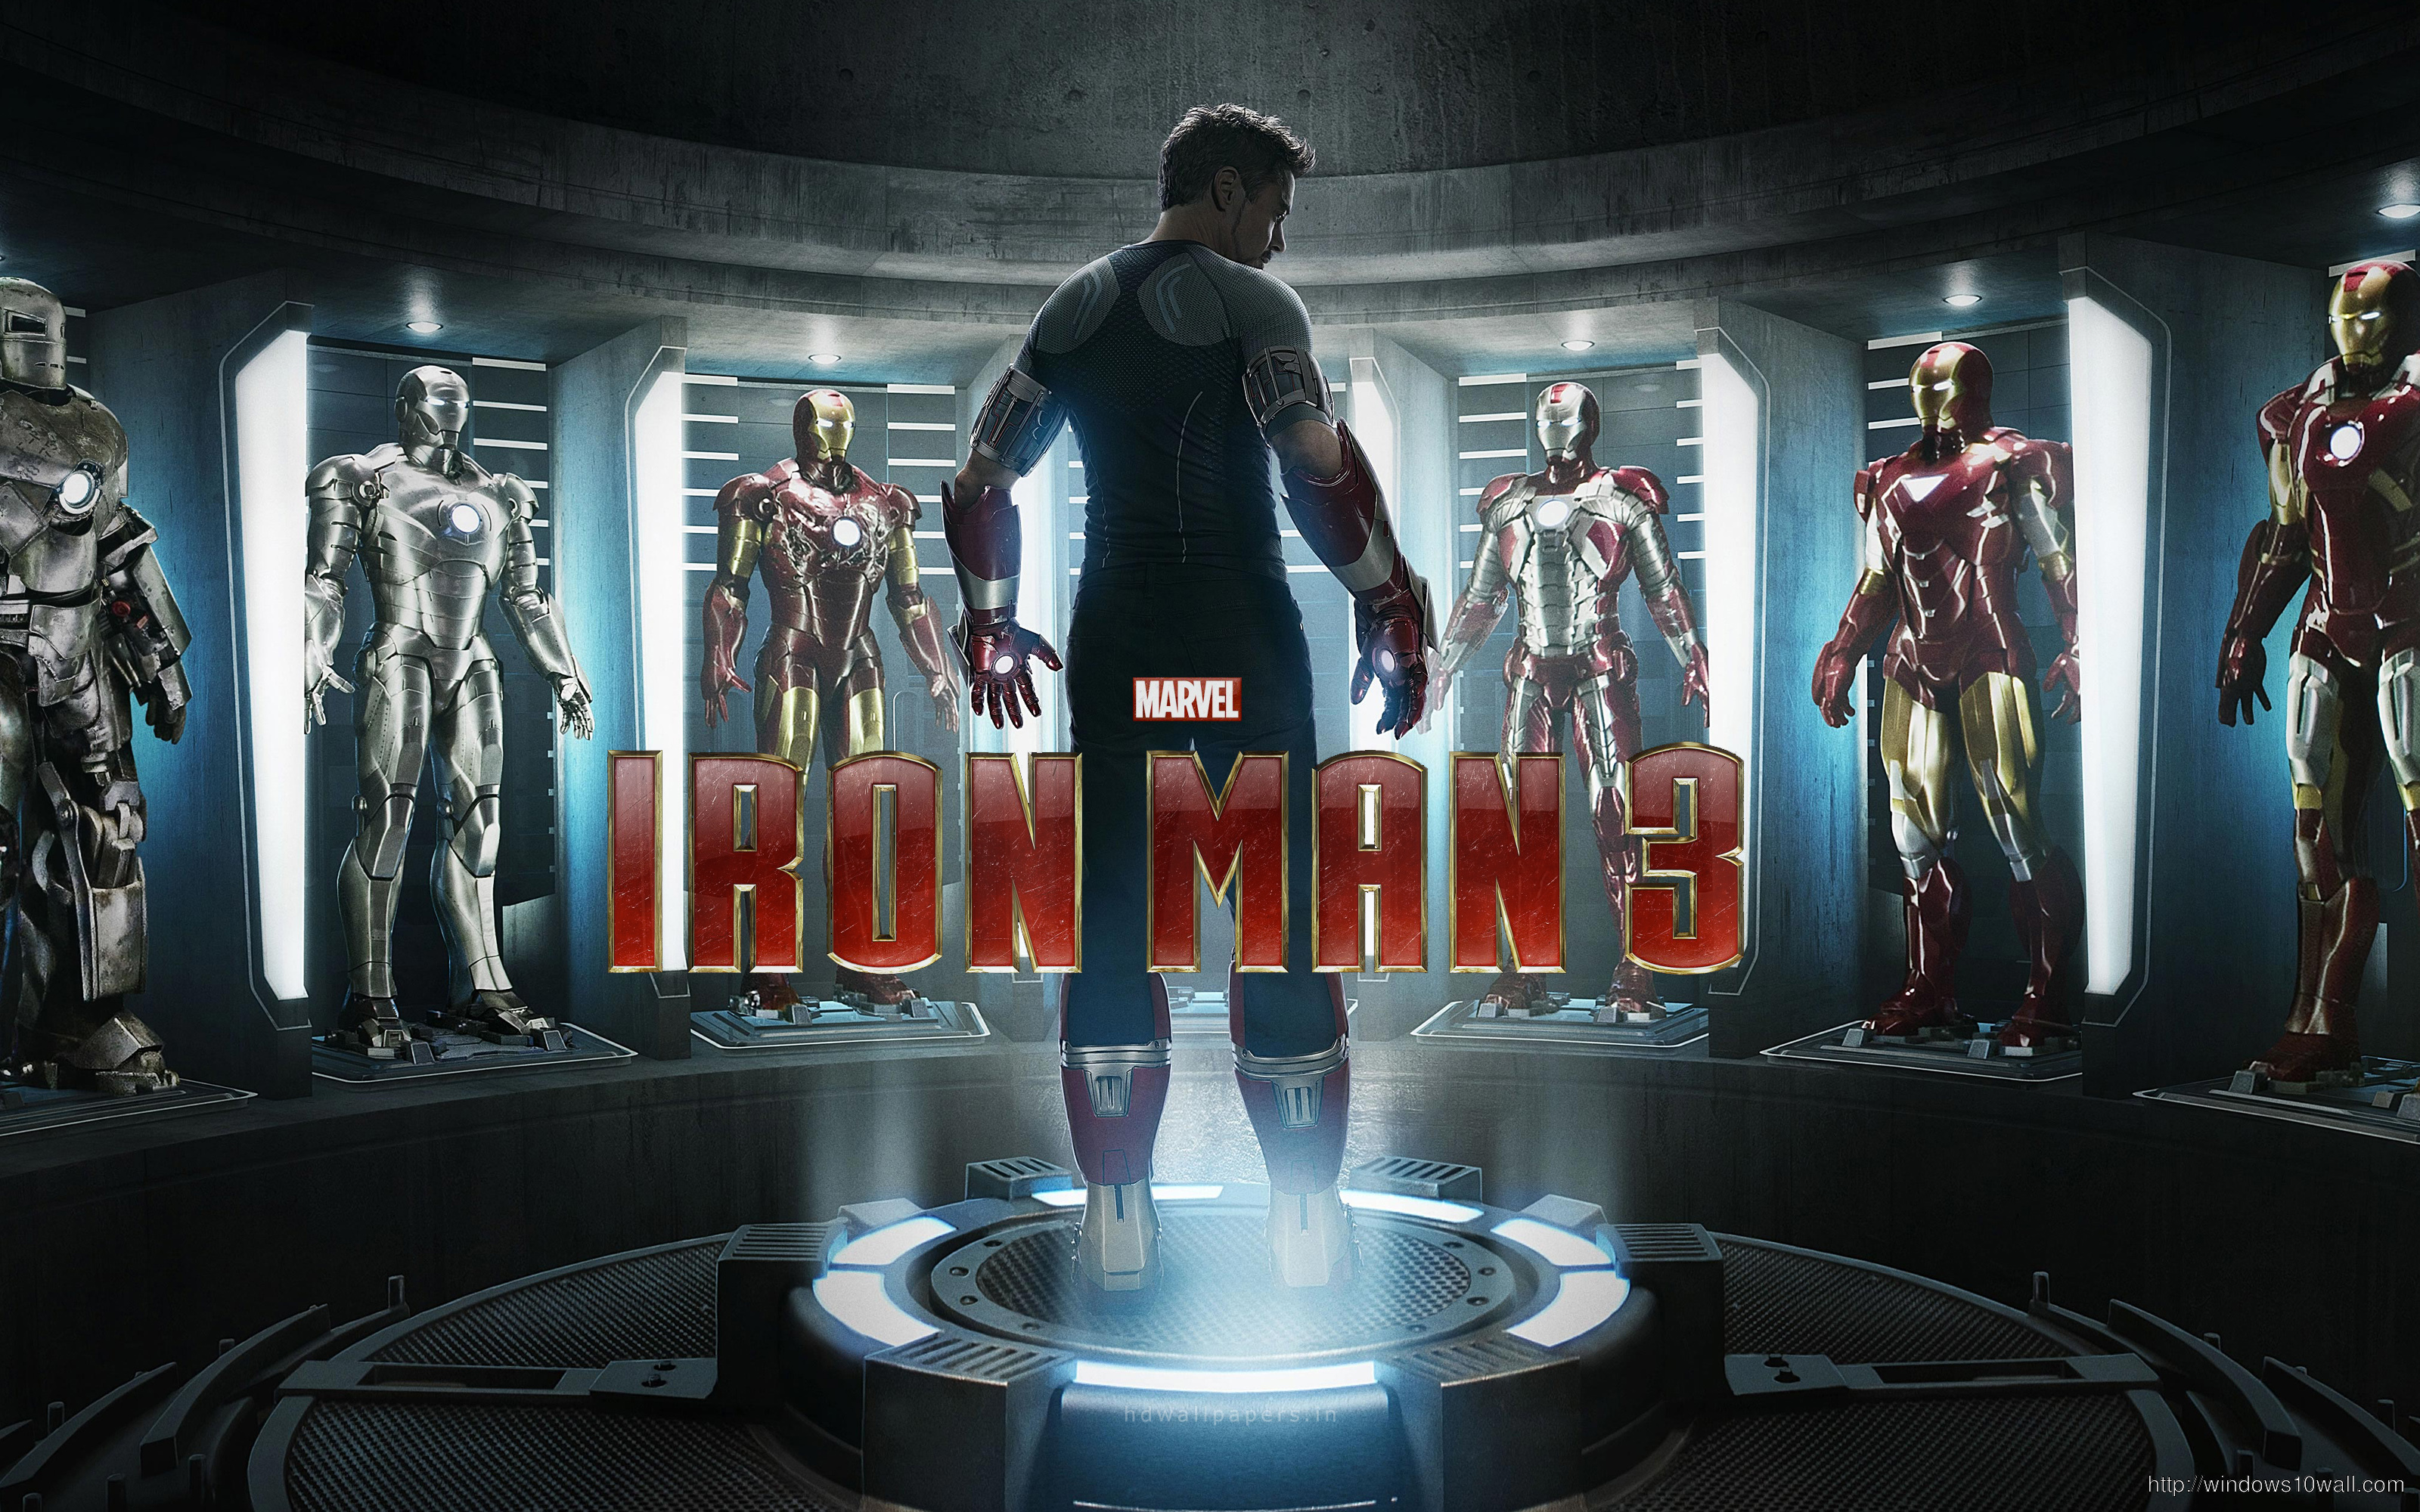 Iron Man 3 is as Big as The Avengers wallpaper free